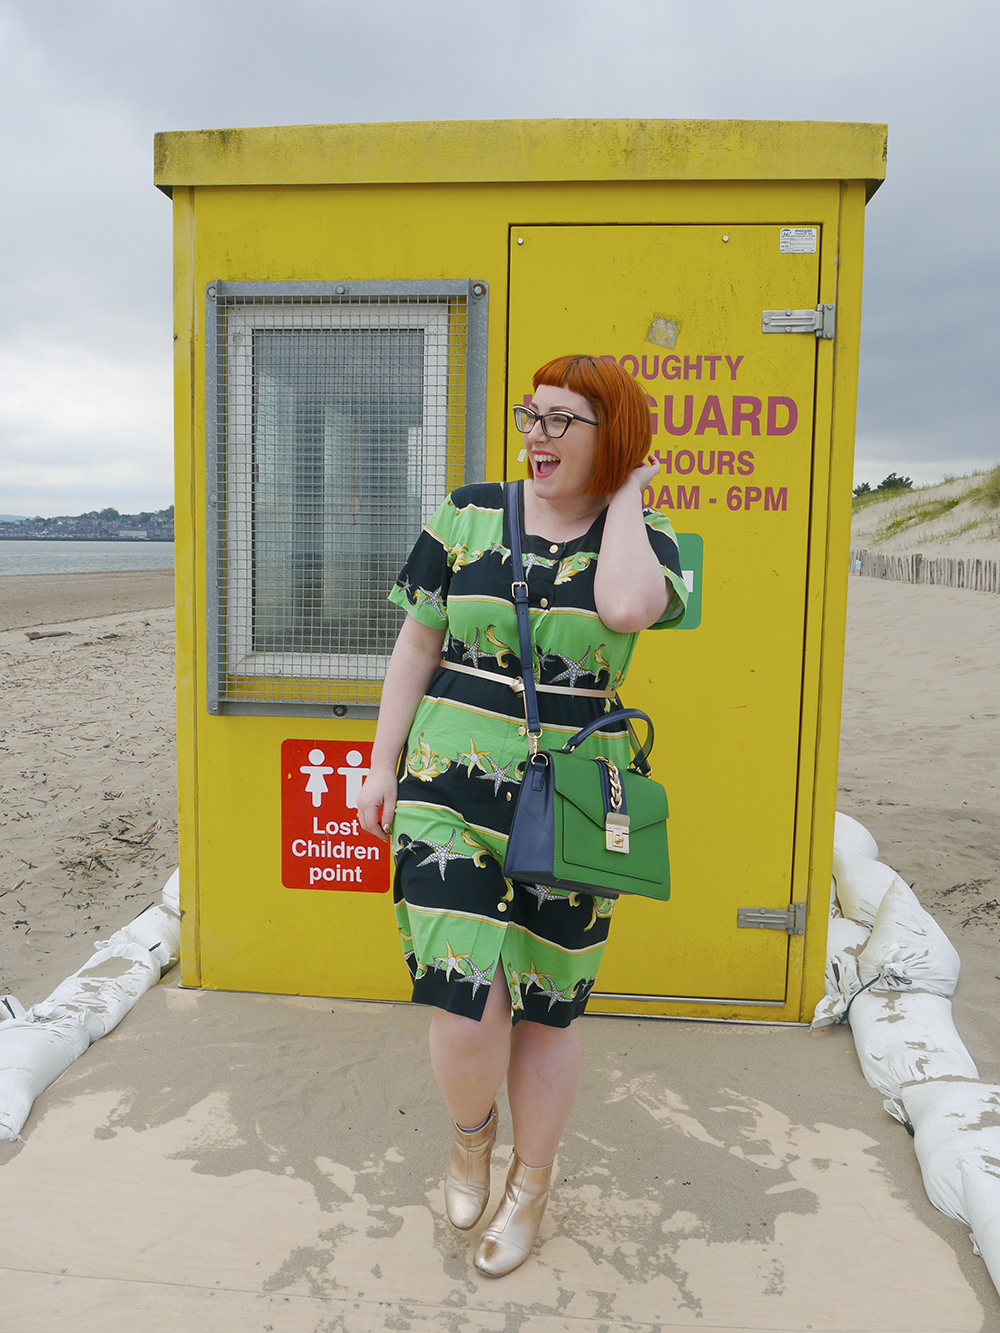 Vintage Beach Style on Broughty Ferry beach